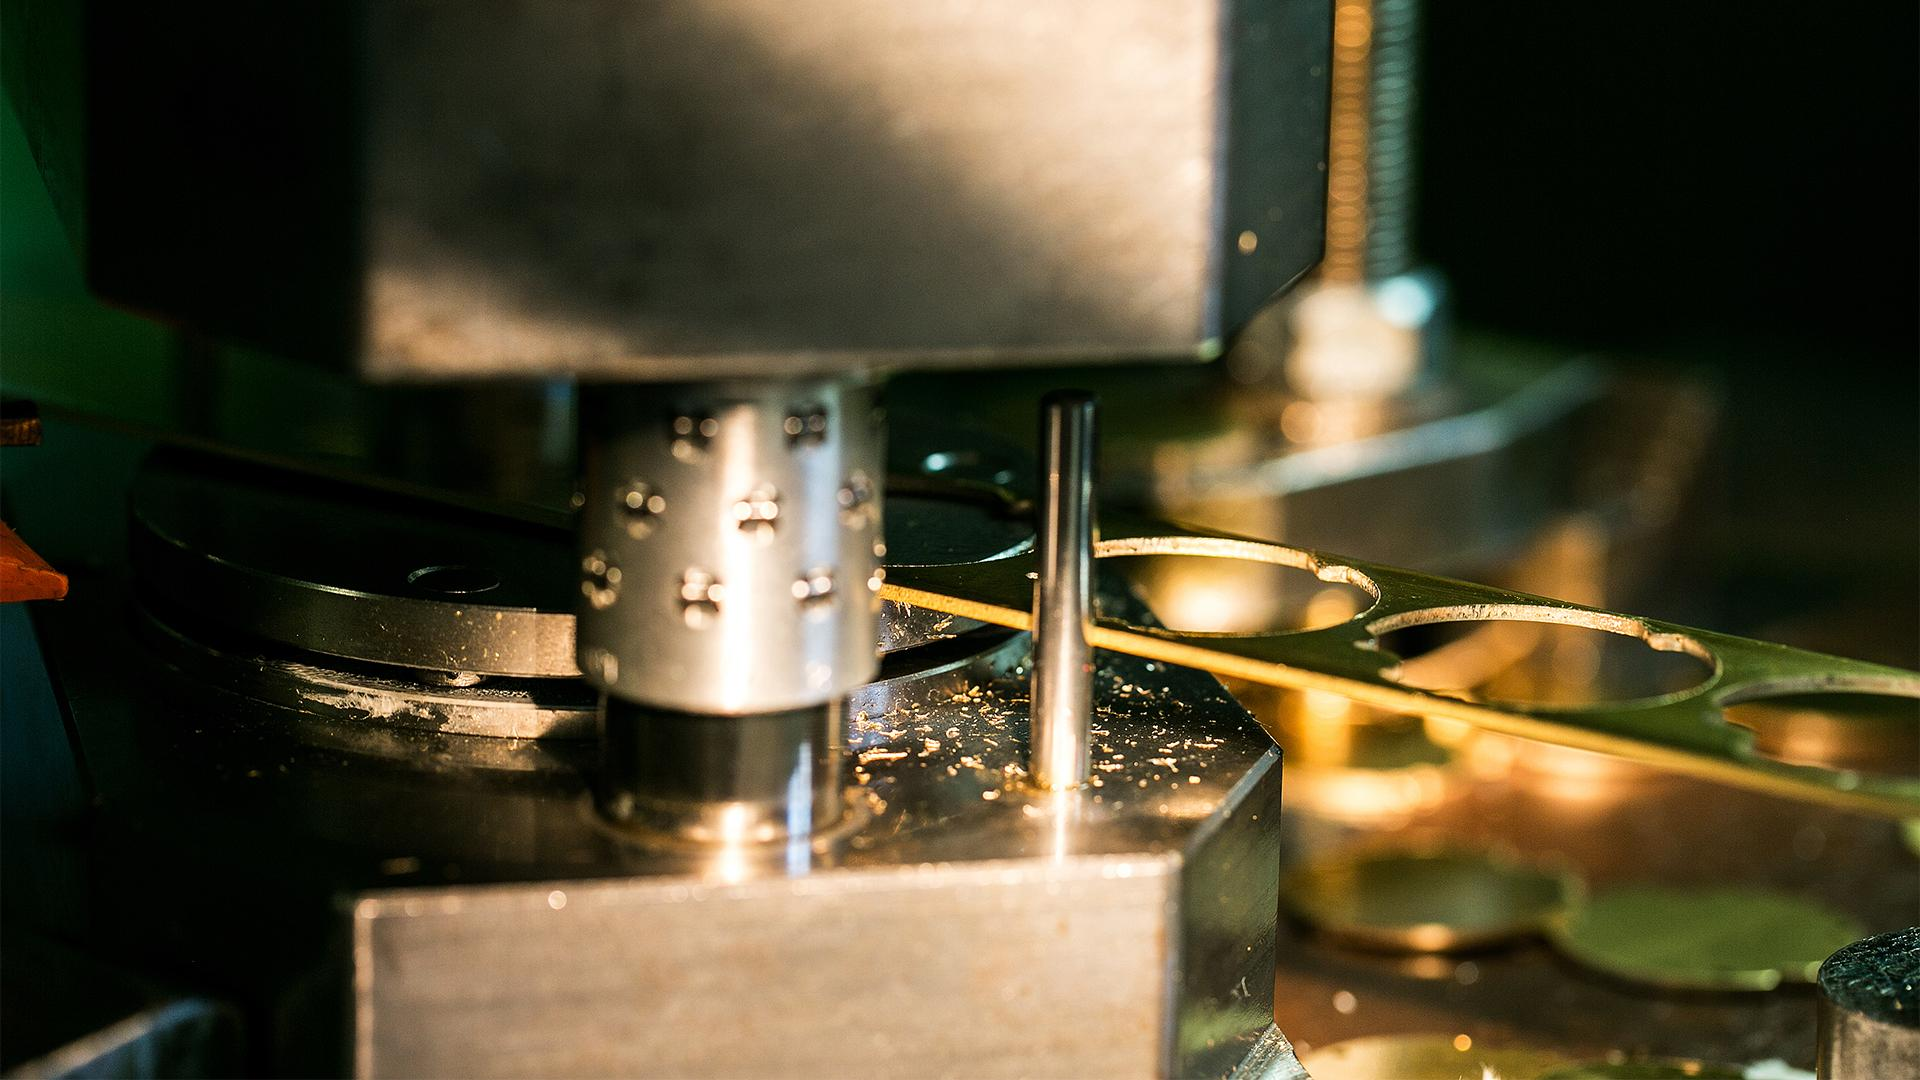 Production process at Jaeger-LeCoultre watch factory